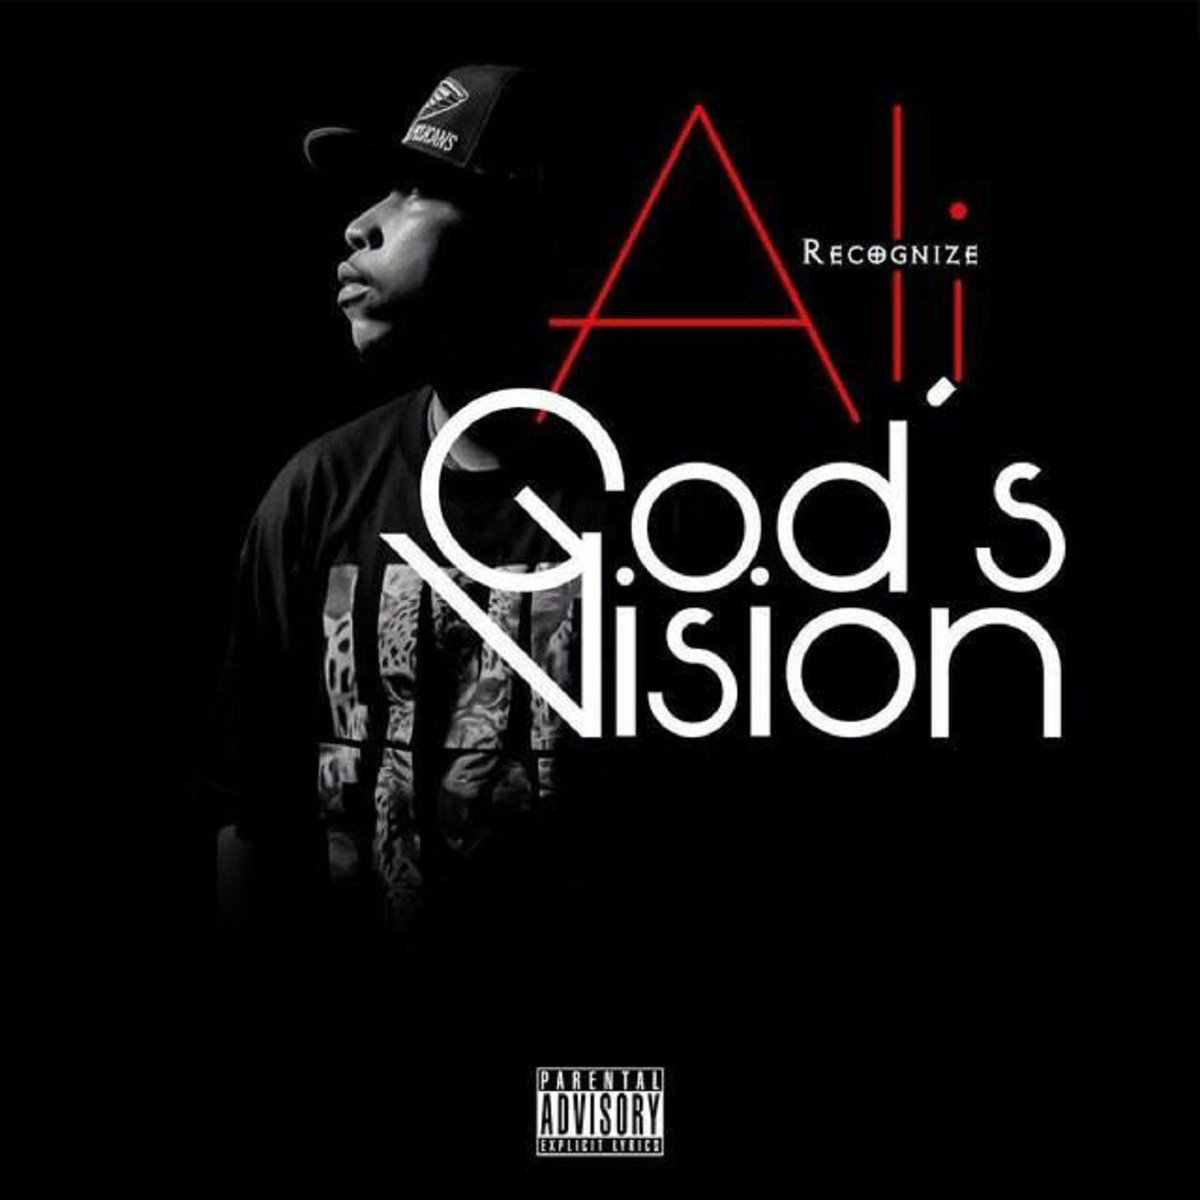 God_s_vision_lp_recognize_ali